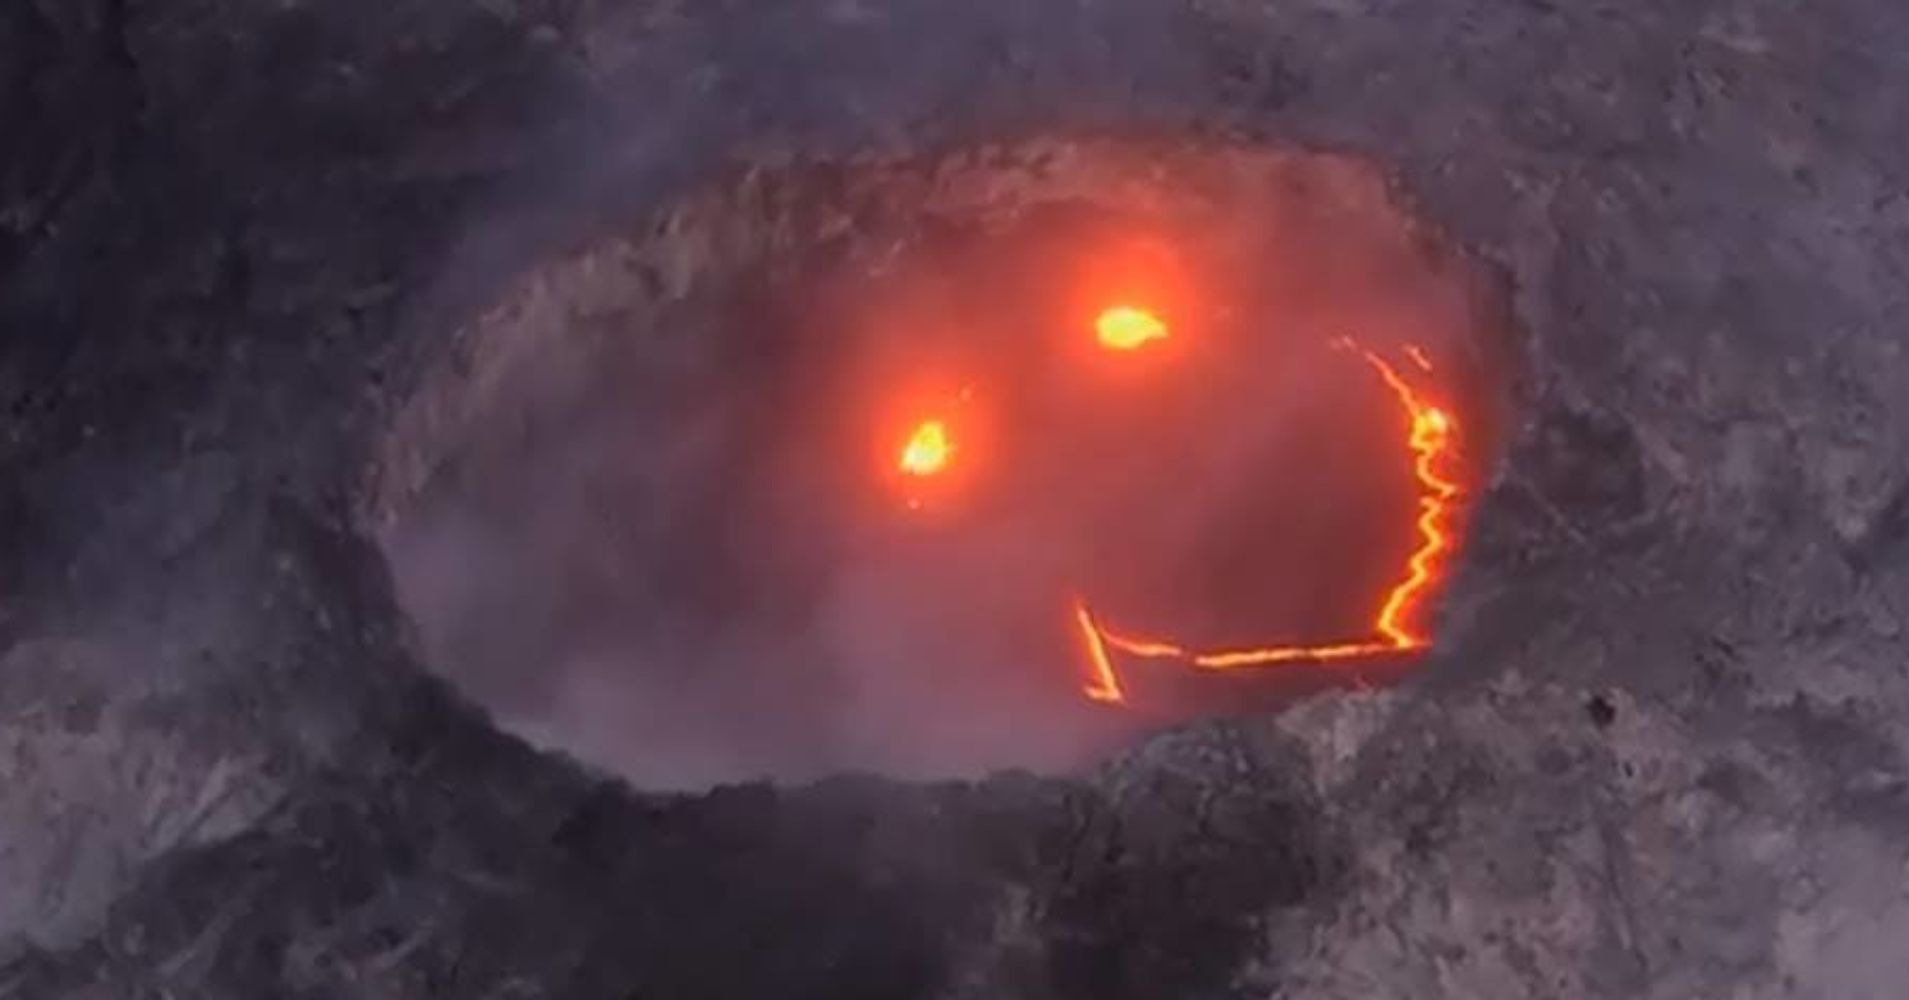 single women in kilauea Incredible new images have emerged of the lava firehose from hawaii's kilauea  spewing as a 'single large  shocking moment barmaid attacks woman for slapping.